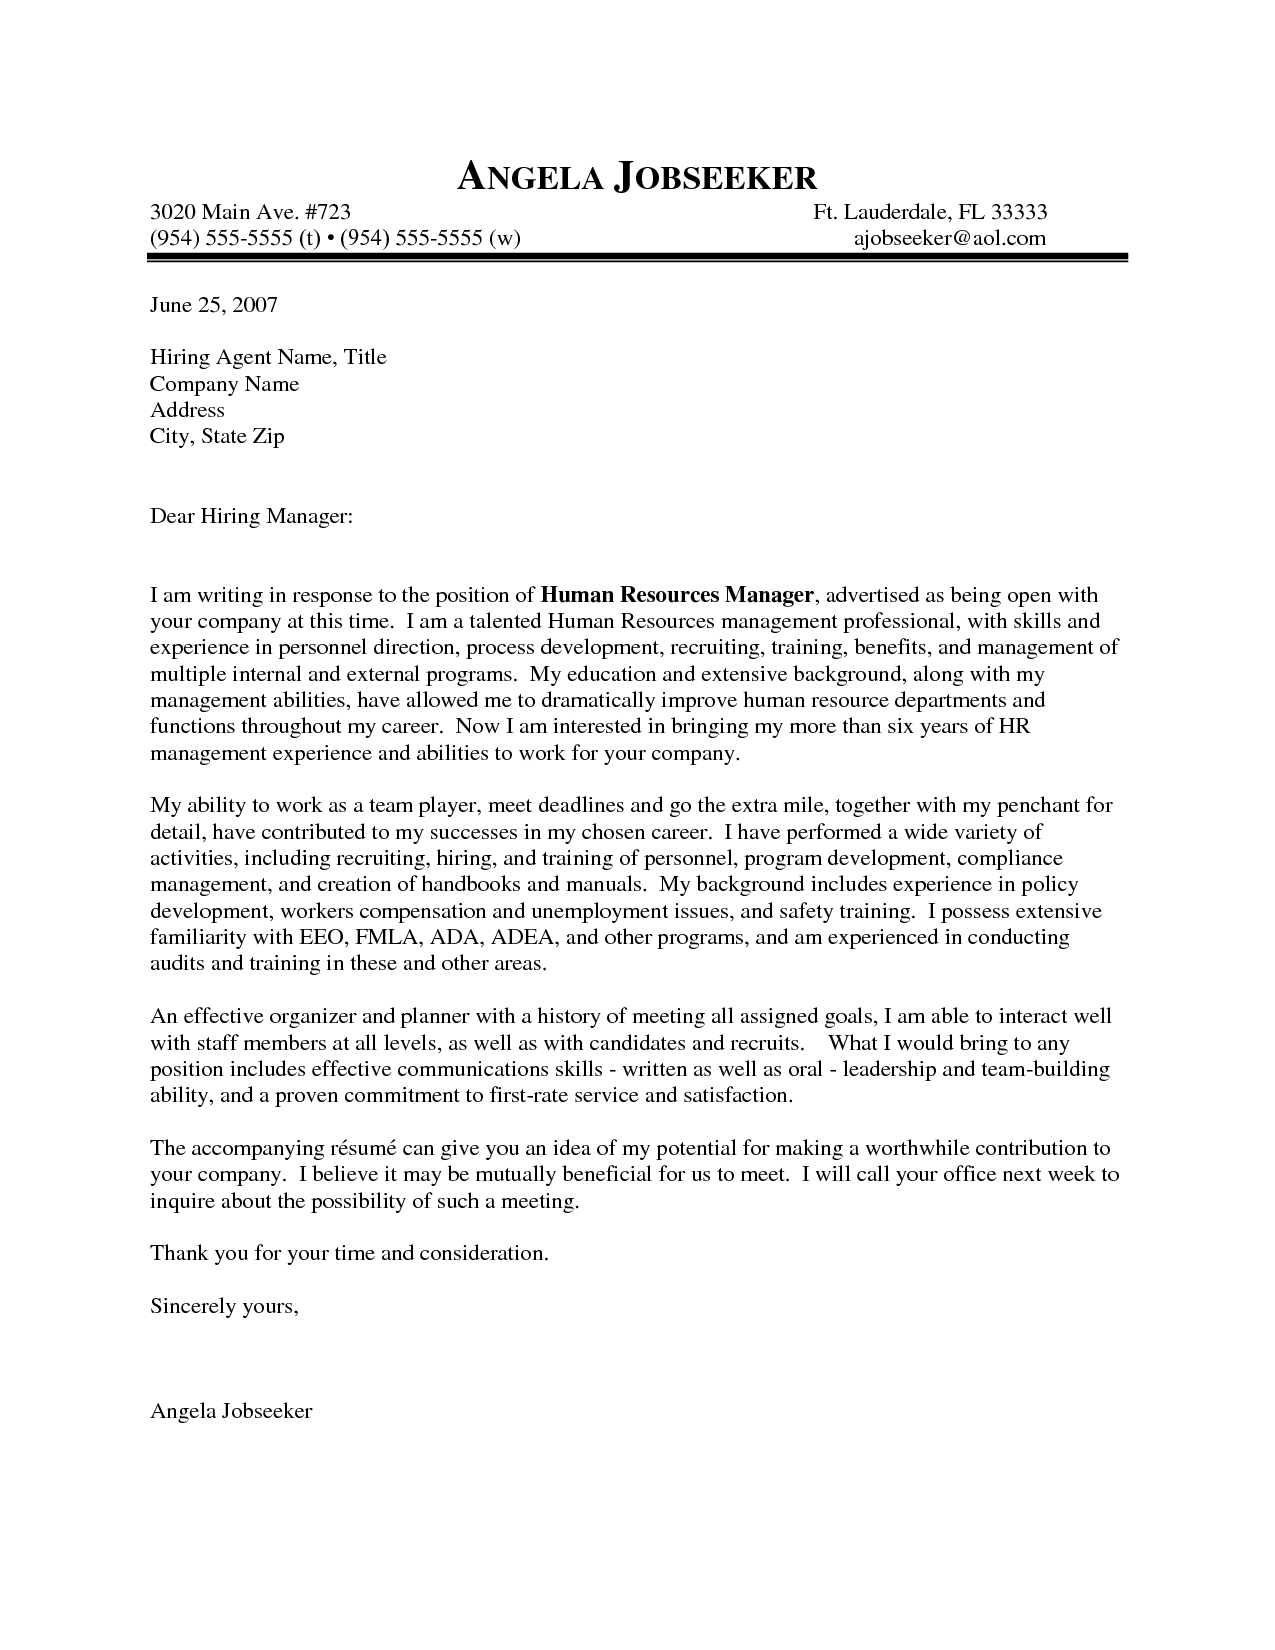 Letter To Hiring Manager Grude Interpretomics Co